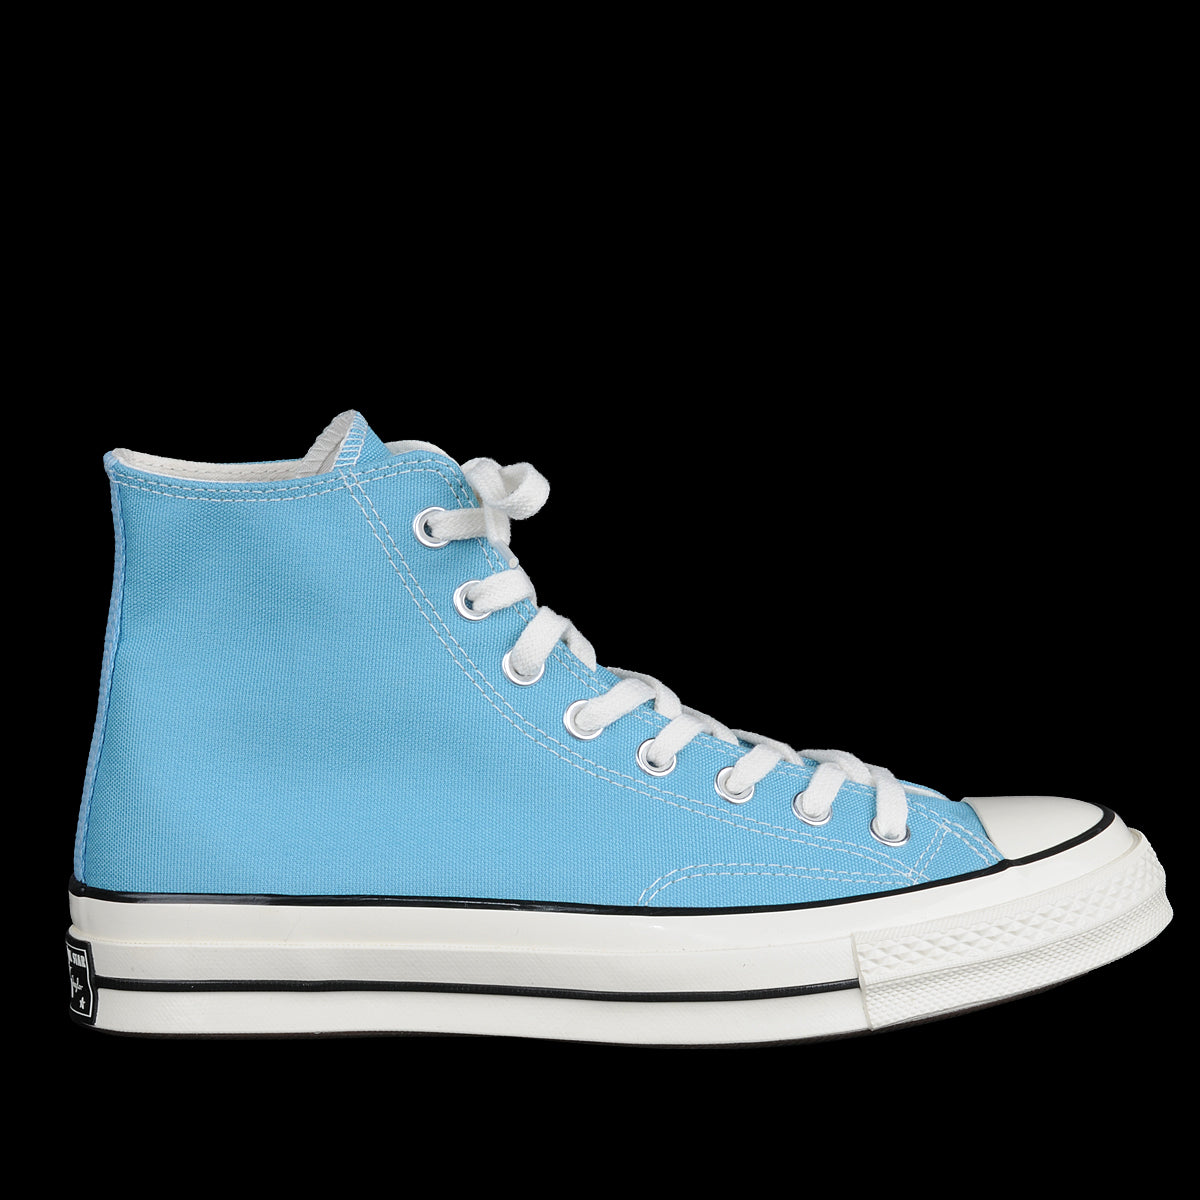 070b65e1b2c177 Converse - Chuck Taylor All Star 70 Hi in Shoreline Blue - UNIONMADE